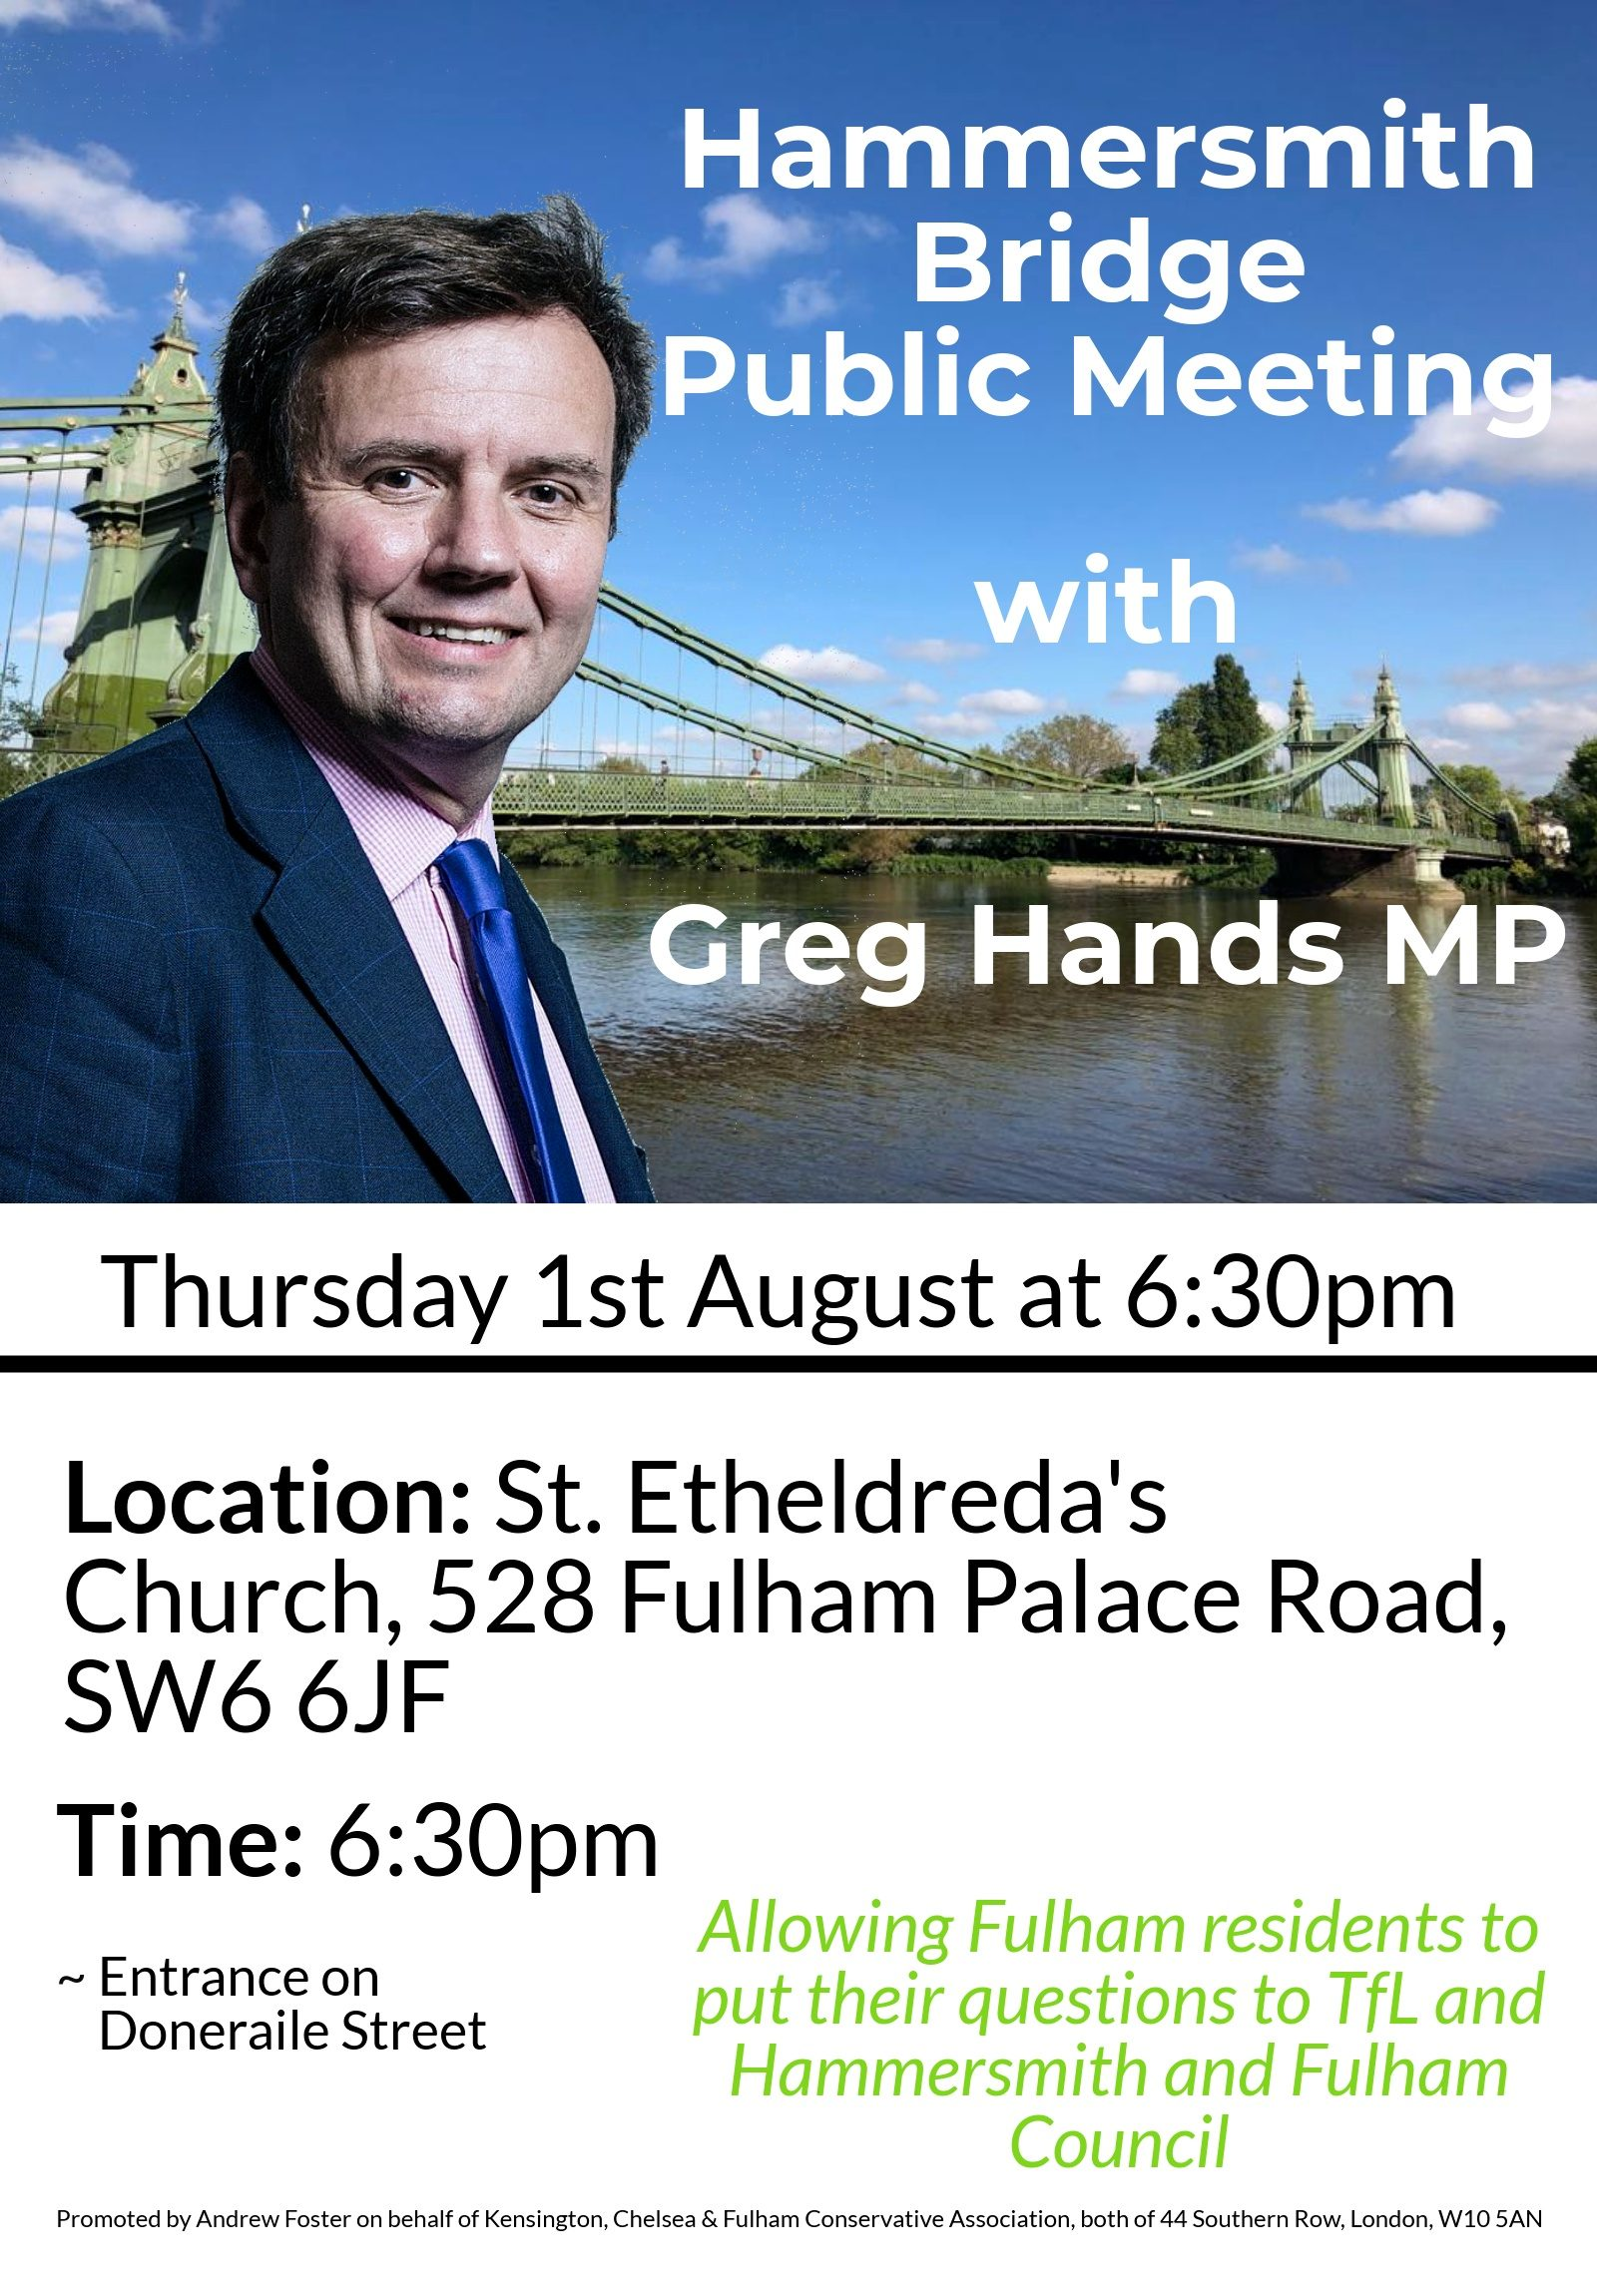 Hammersmith Bridge Public Meeting